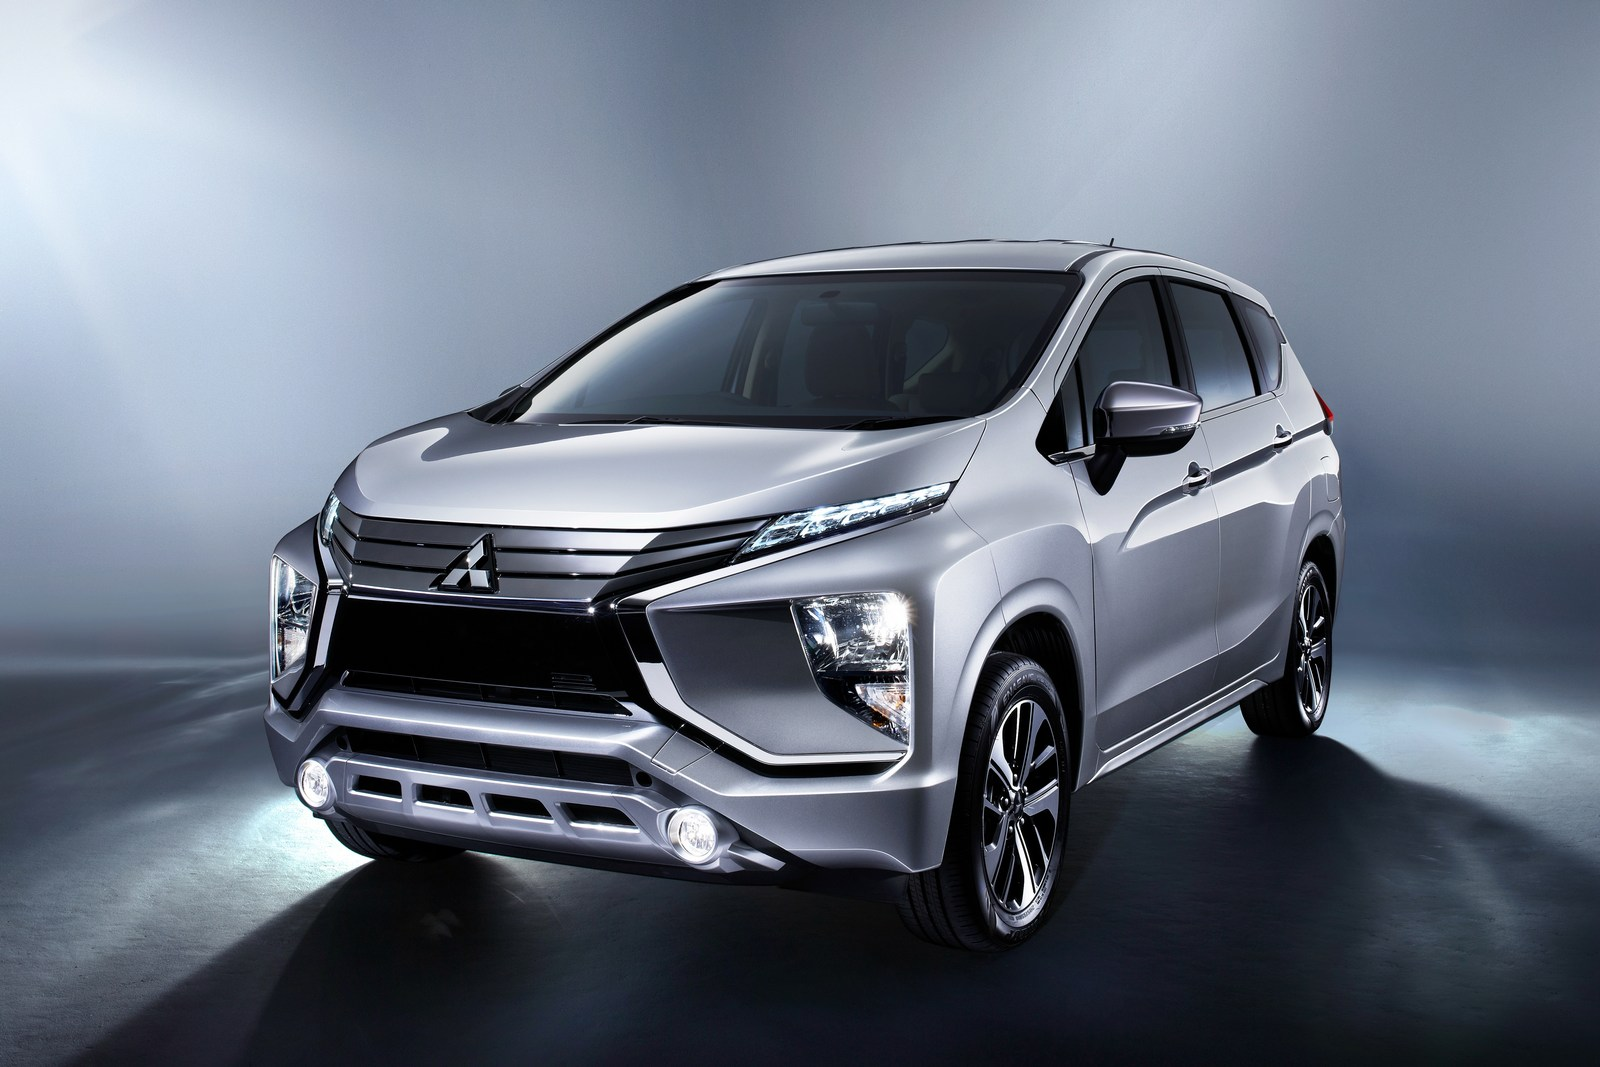 2018 Mitsubishi Delica Previewed By Concept Heading To